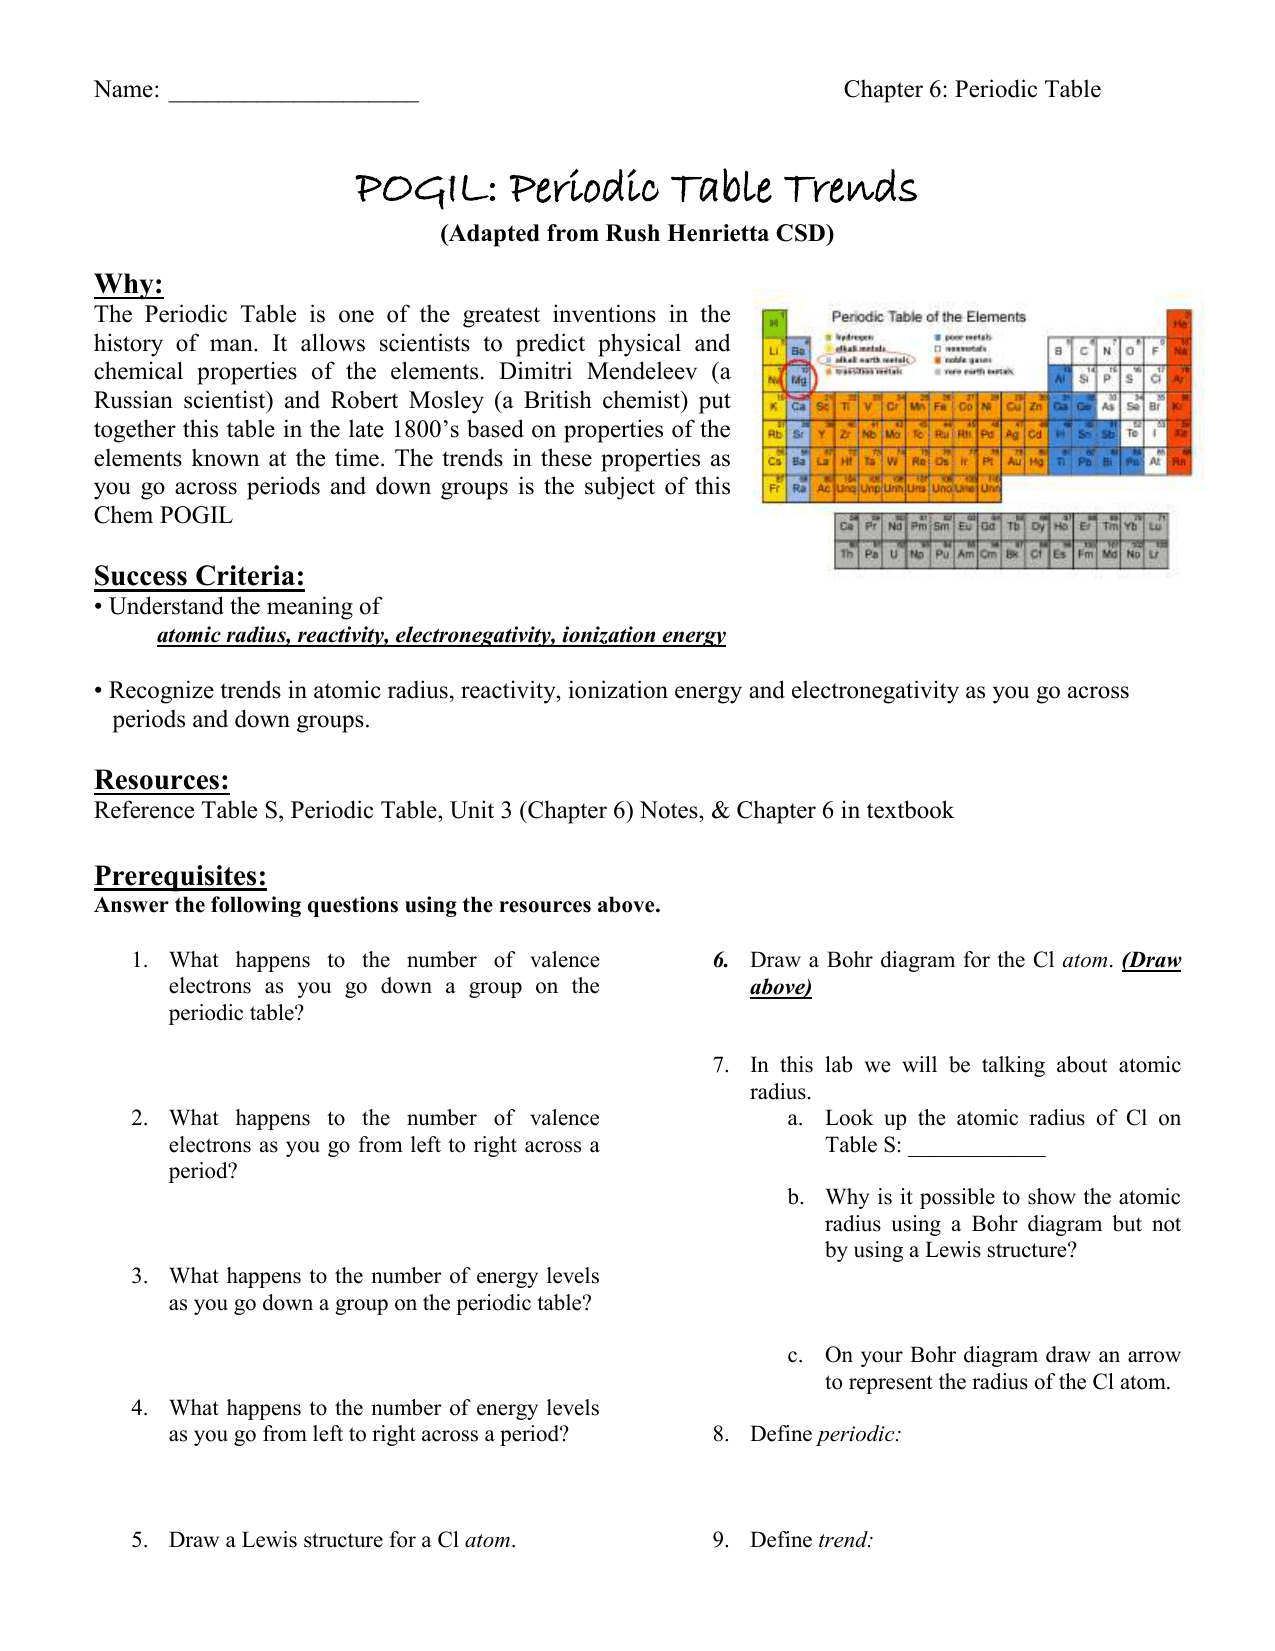 Periodic Table Trends Worksheet Answer Key Atomic Radius